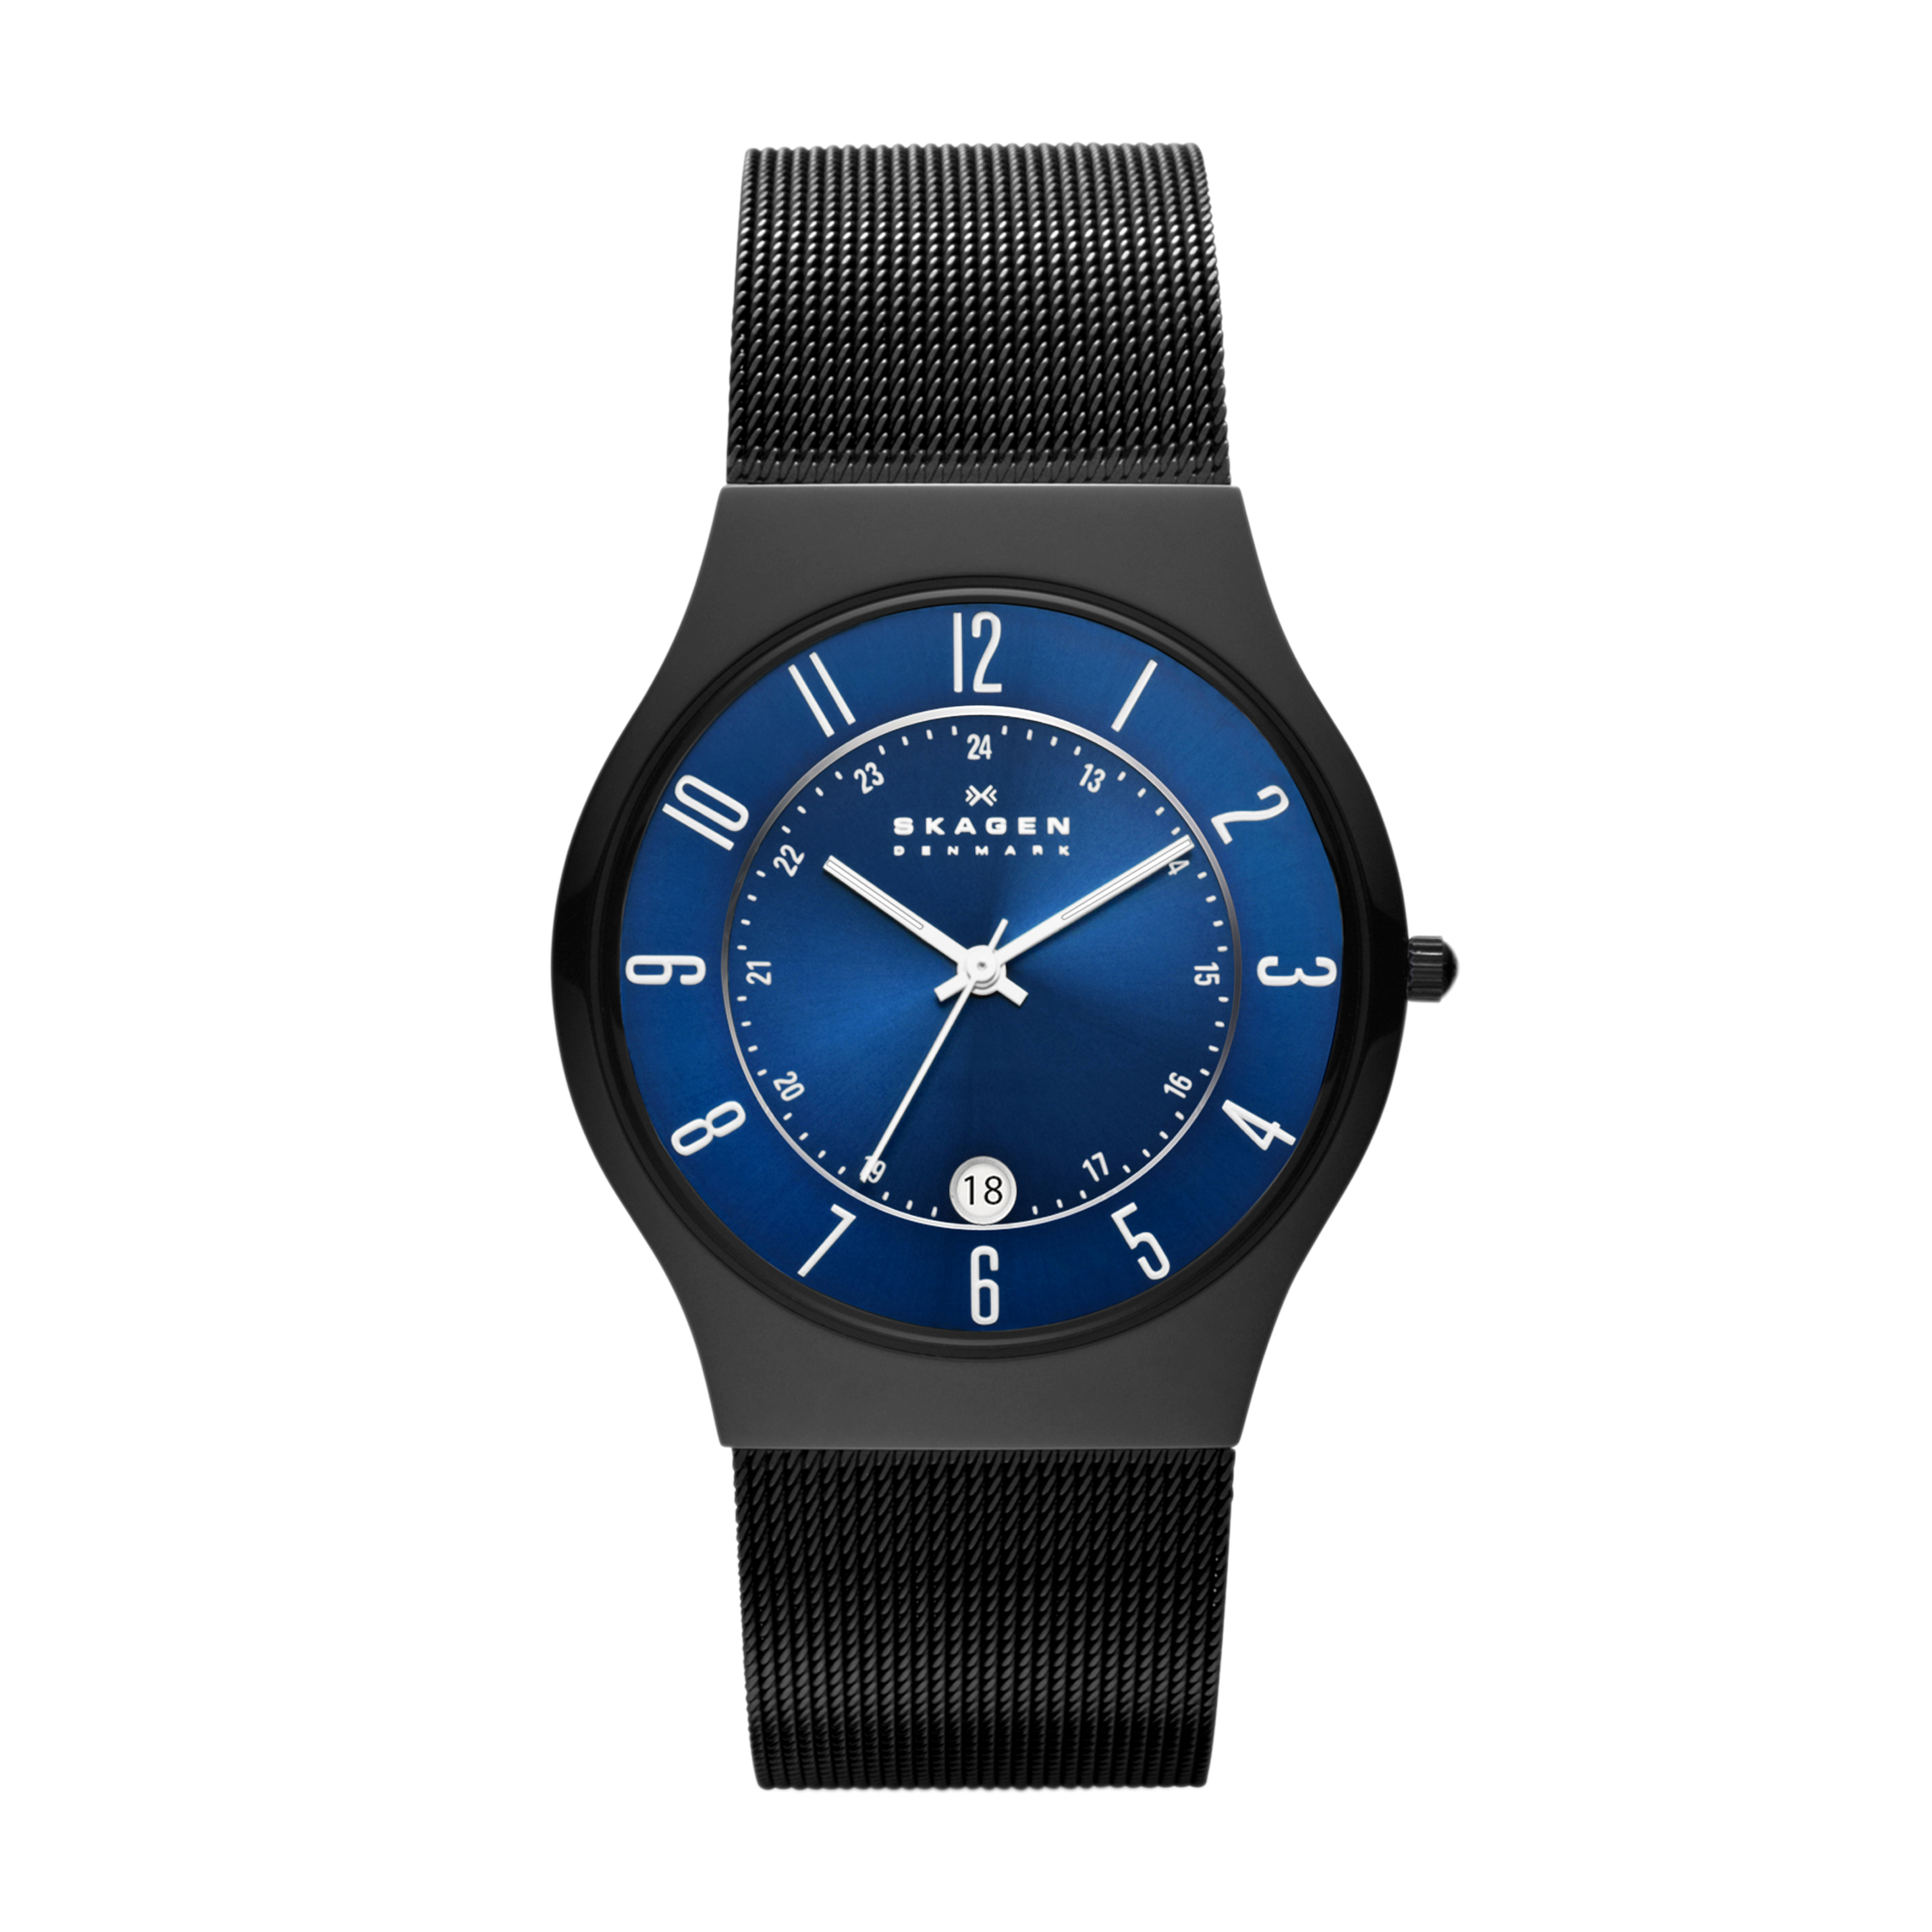 Skagen T233XLTMN 'Grenen' Black Titanium Mens Watch